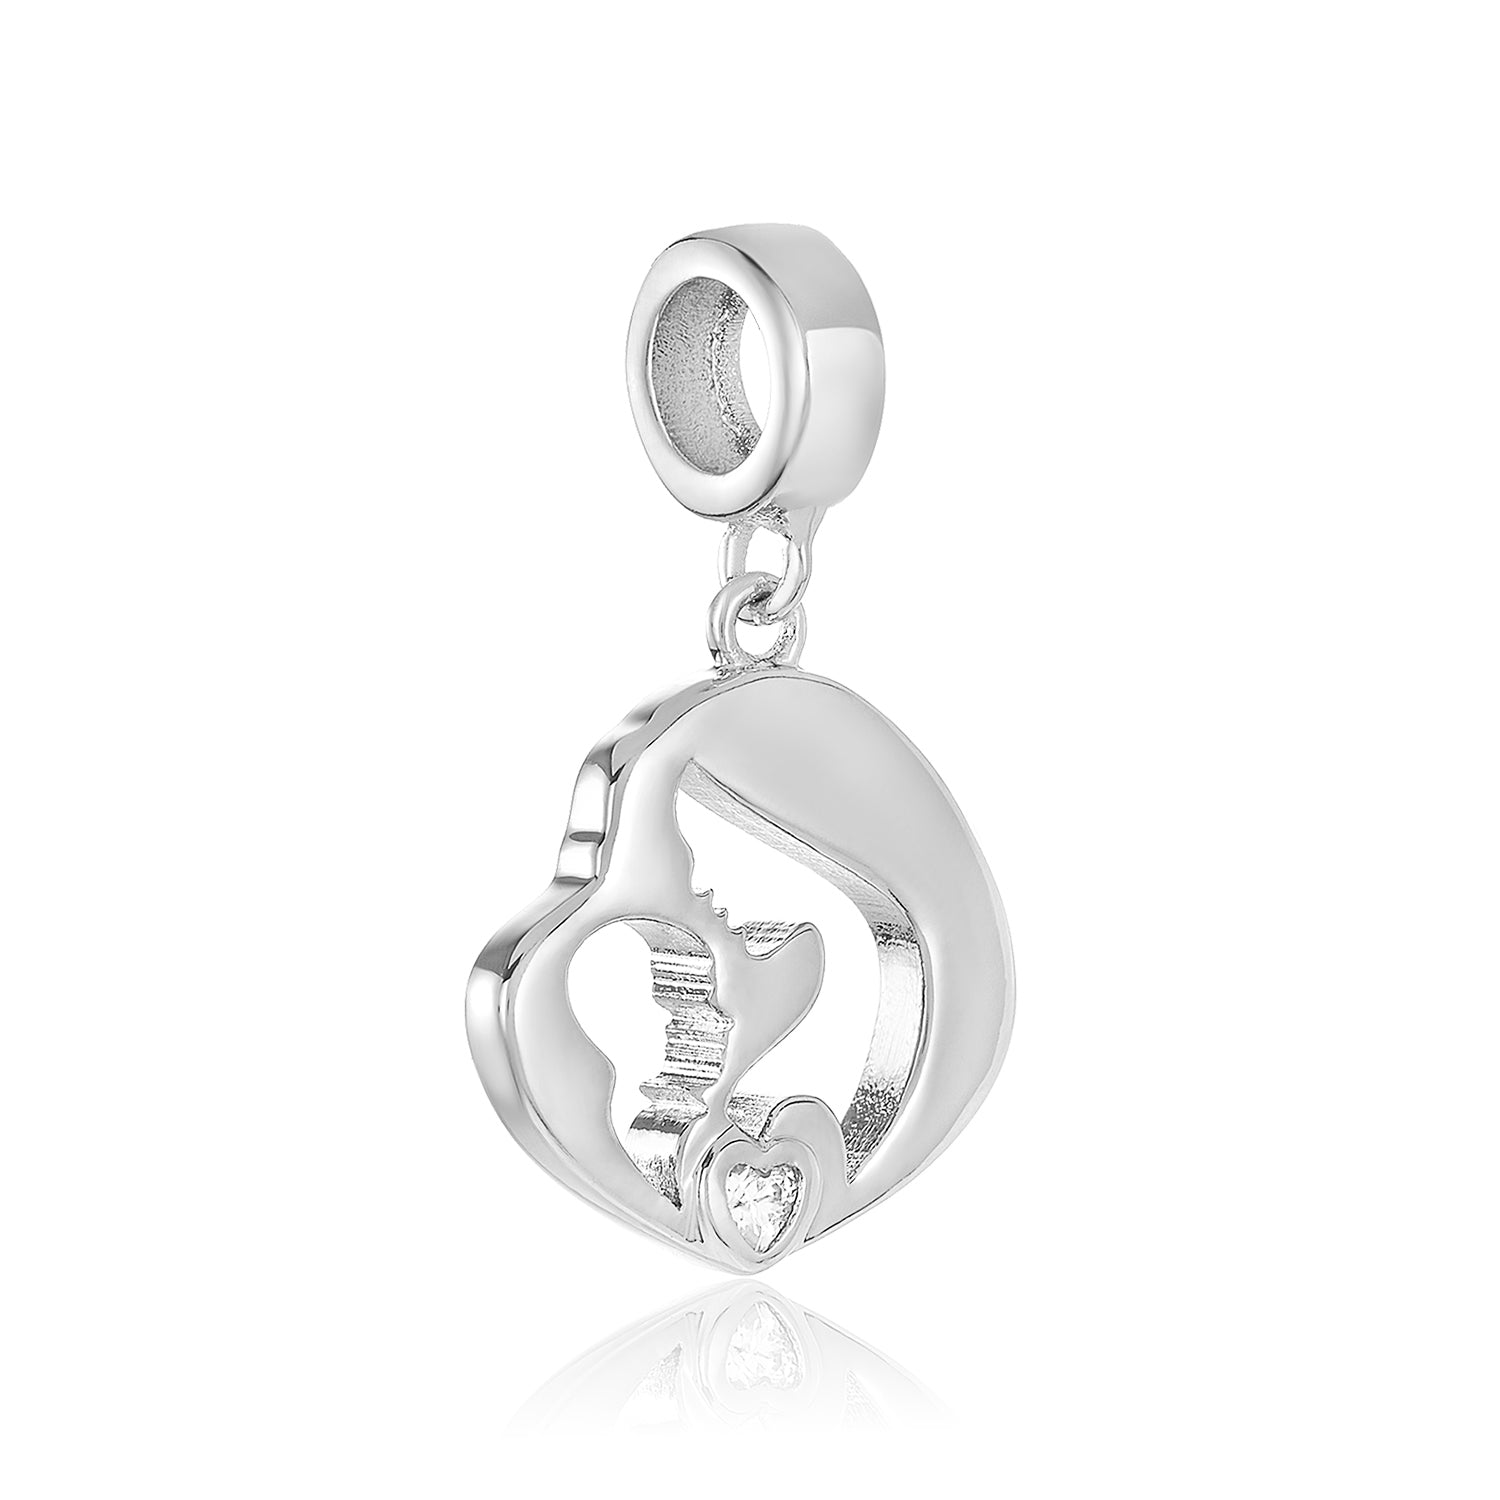 Silver mother and child charm for use with DBW interchangeable charm bracelets.